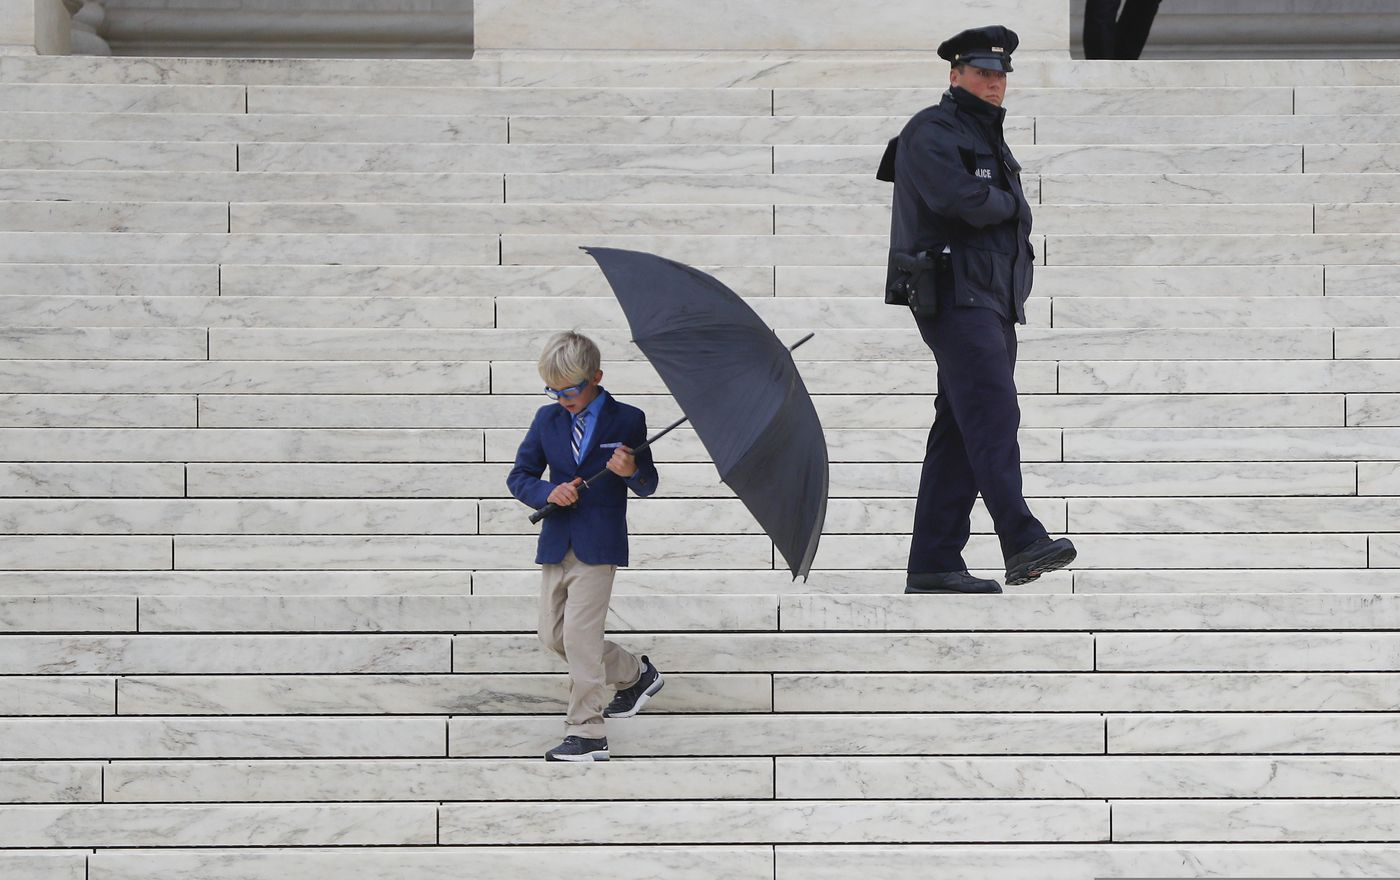 Matteo Halsey, 7, grandson of Alaska resident John Sturgeon walks down the stairs outside the Supreme Court, Monday, Nov. 5, 2018 in Washington. (AP Photo/Pablo Martinez Monsivais)